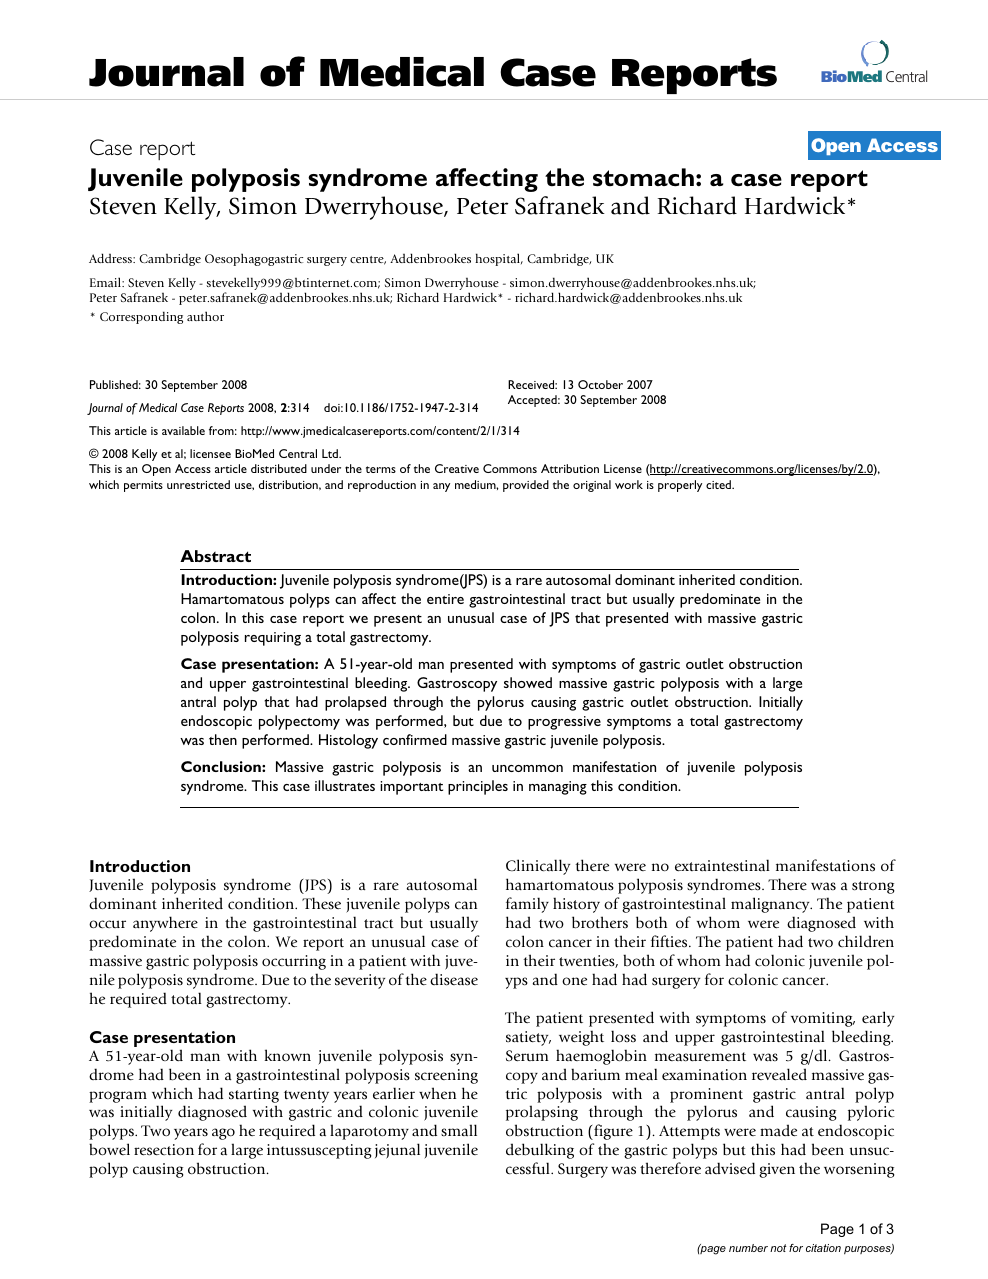 Juvenile Polyposis Syndrome Affecting The Stomach A Case Report Topic Of Research Paper In Clinical Medicine Download Scholarly Article Pdf And Read For Free On Cyberleninka Open Science Hub